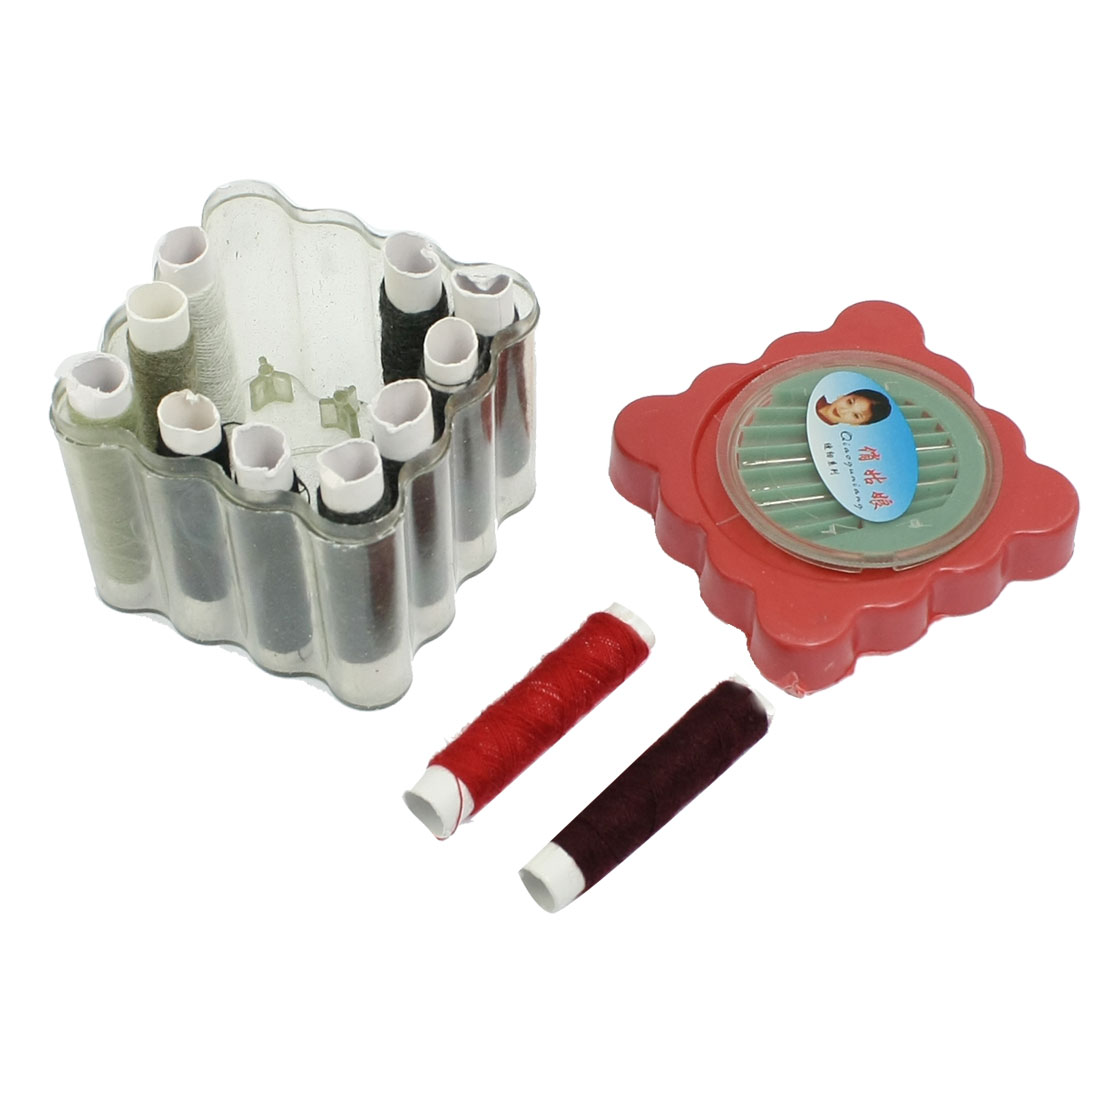 12 Pcs Colorful Thread Spools Needles Sewing Set w Plastic Case